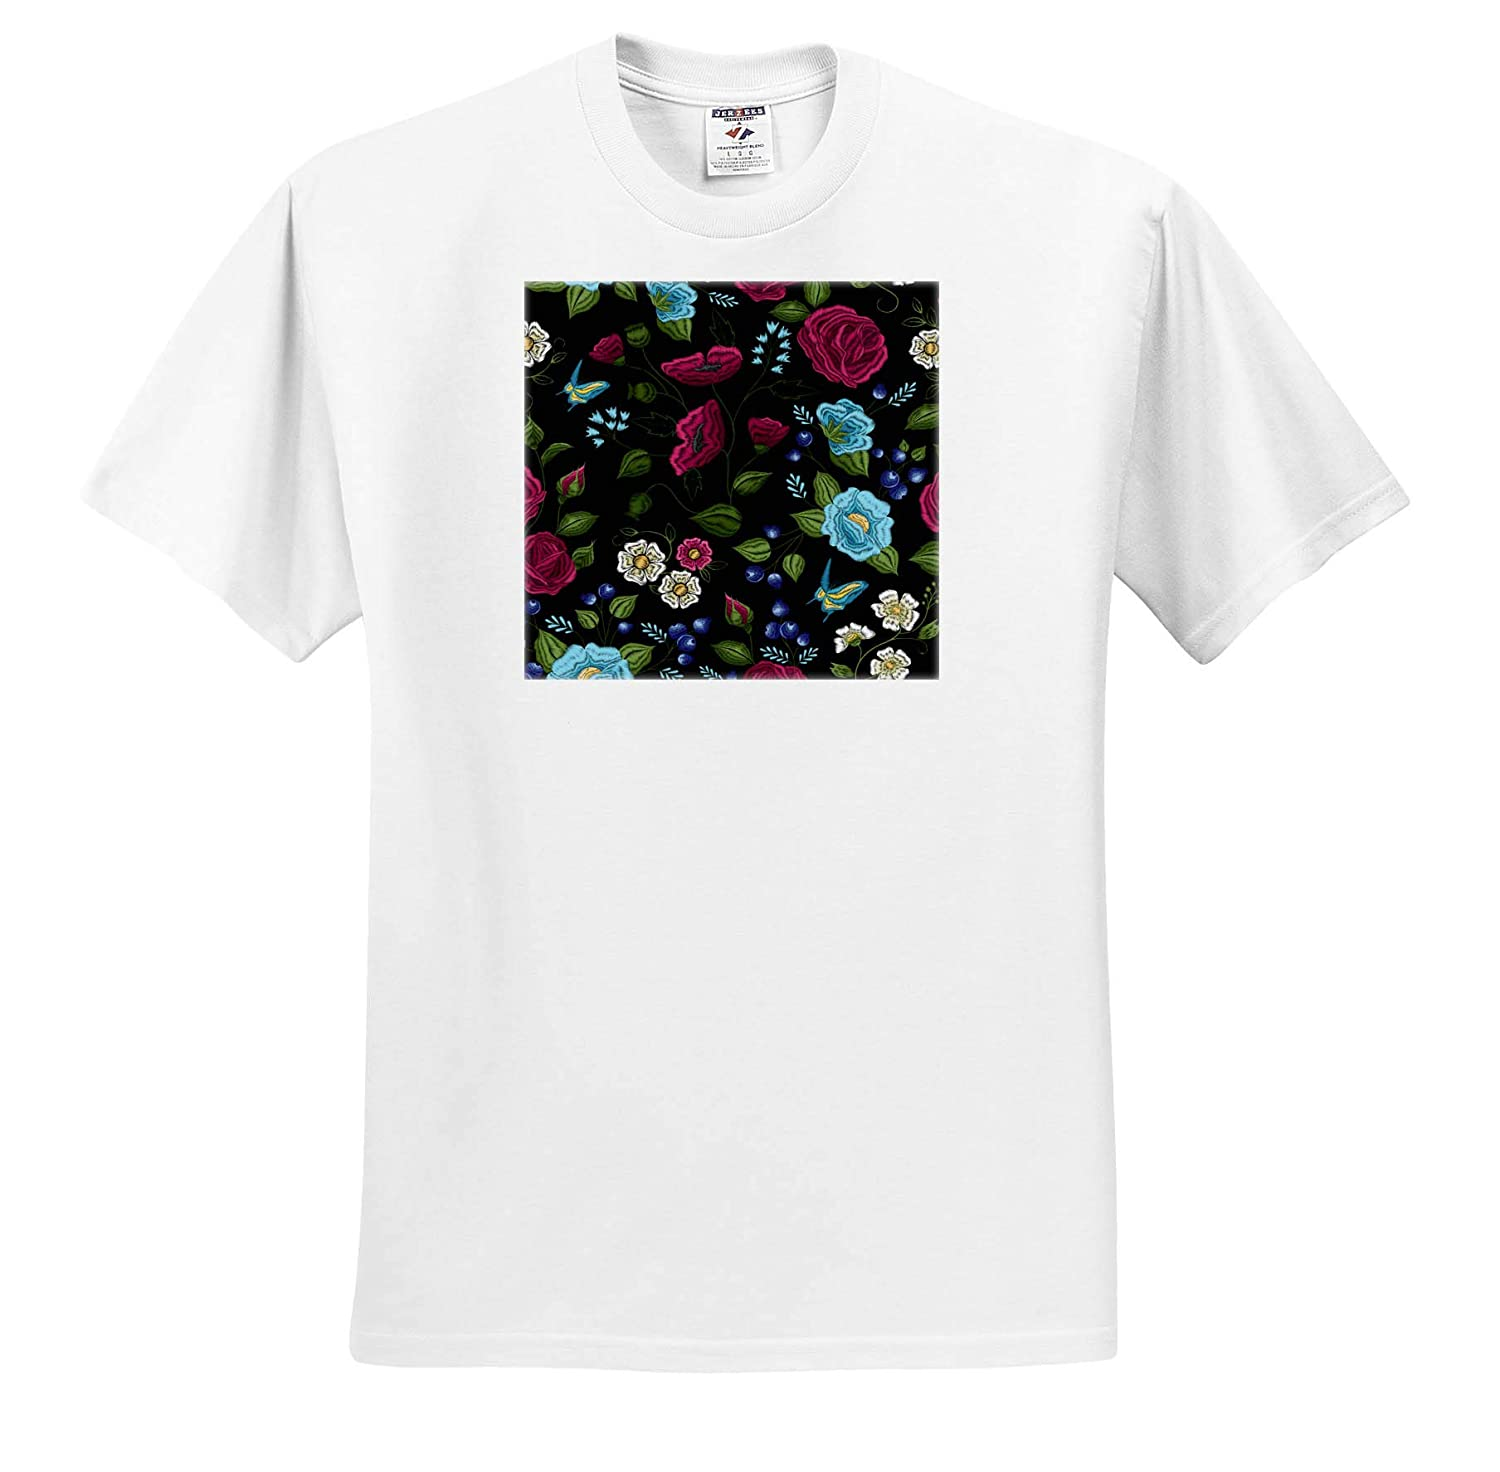 Vintage Flowers with Black Background and Butterflies 3dRose Sven Herkenrath Flower Adult T-Shirt XL ts/_310974